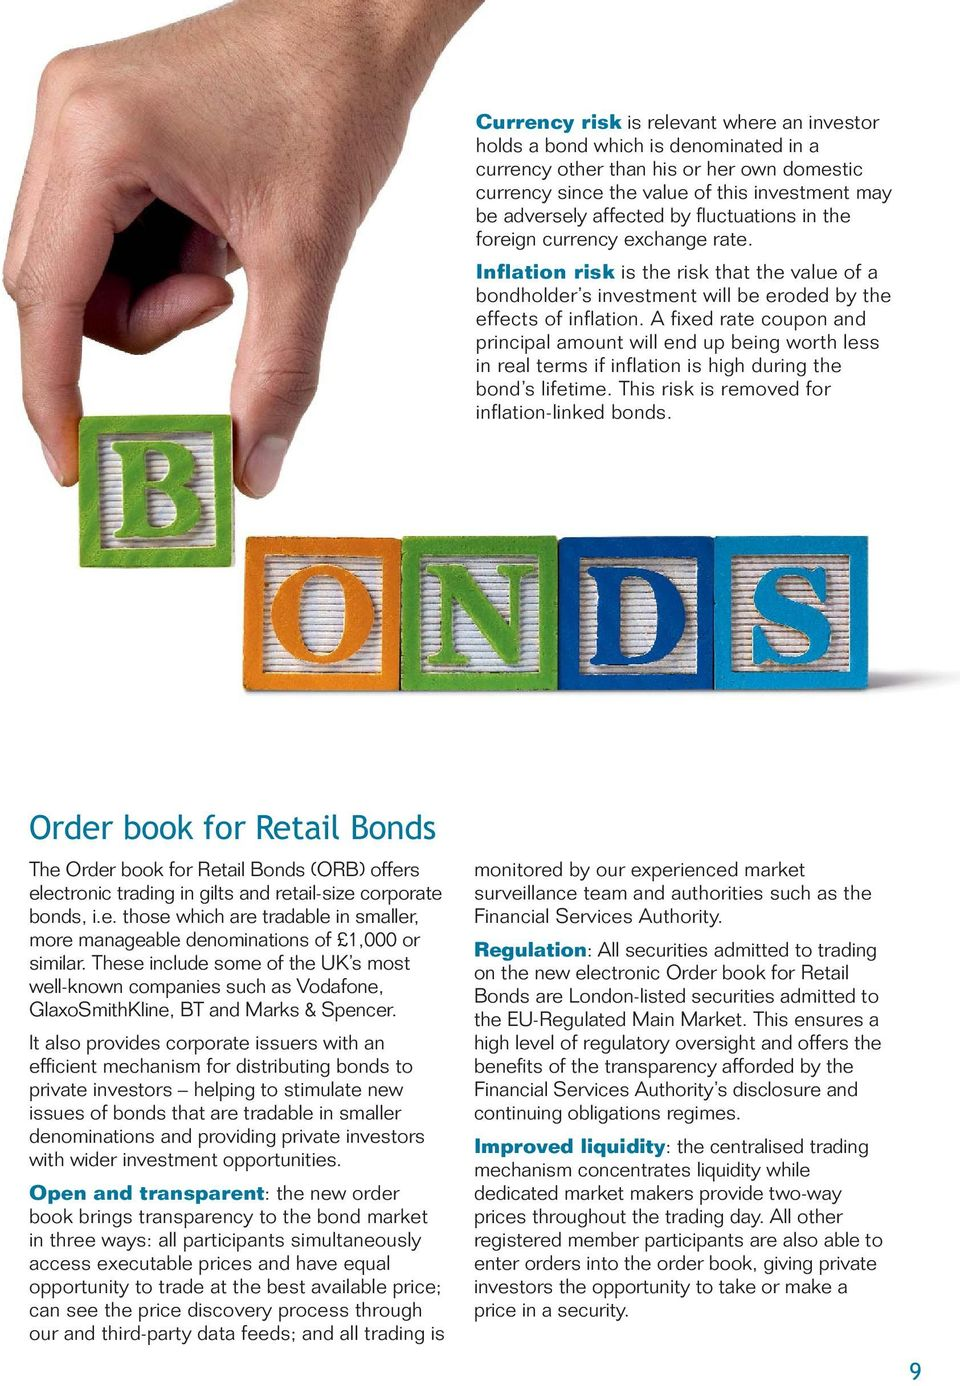 A fixed rate coupon and principal amount will end up being worth less in real terms if inflation is high during the bond s lifetime. This risk is removed for inflation-linked bonds.